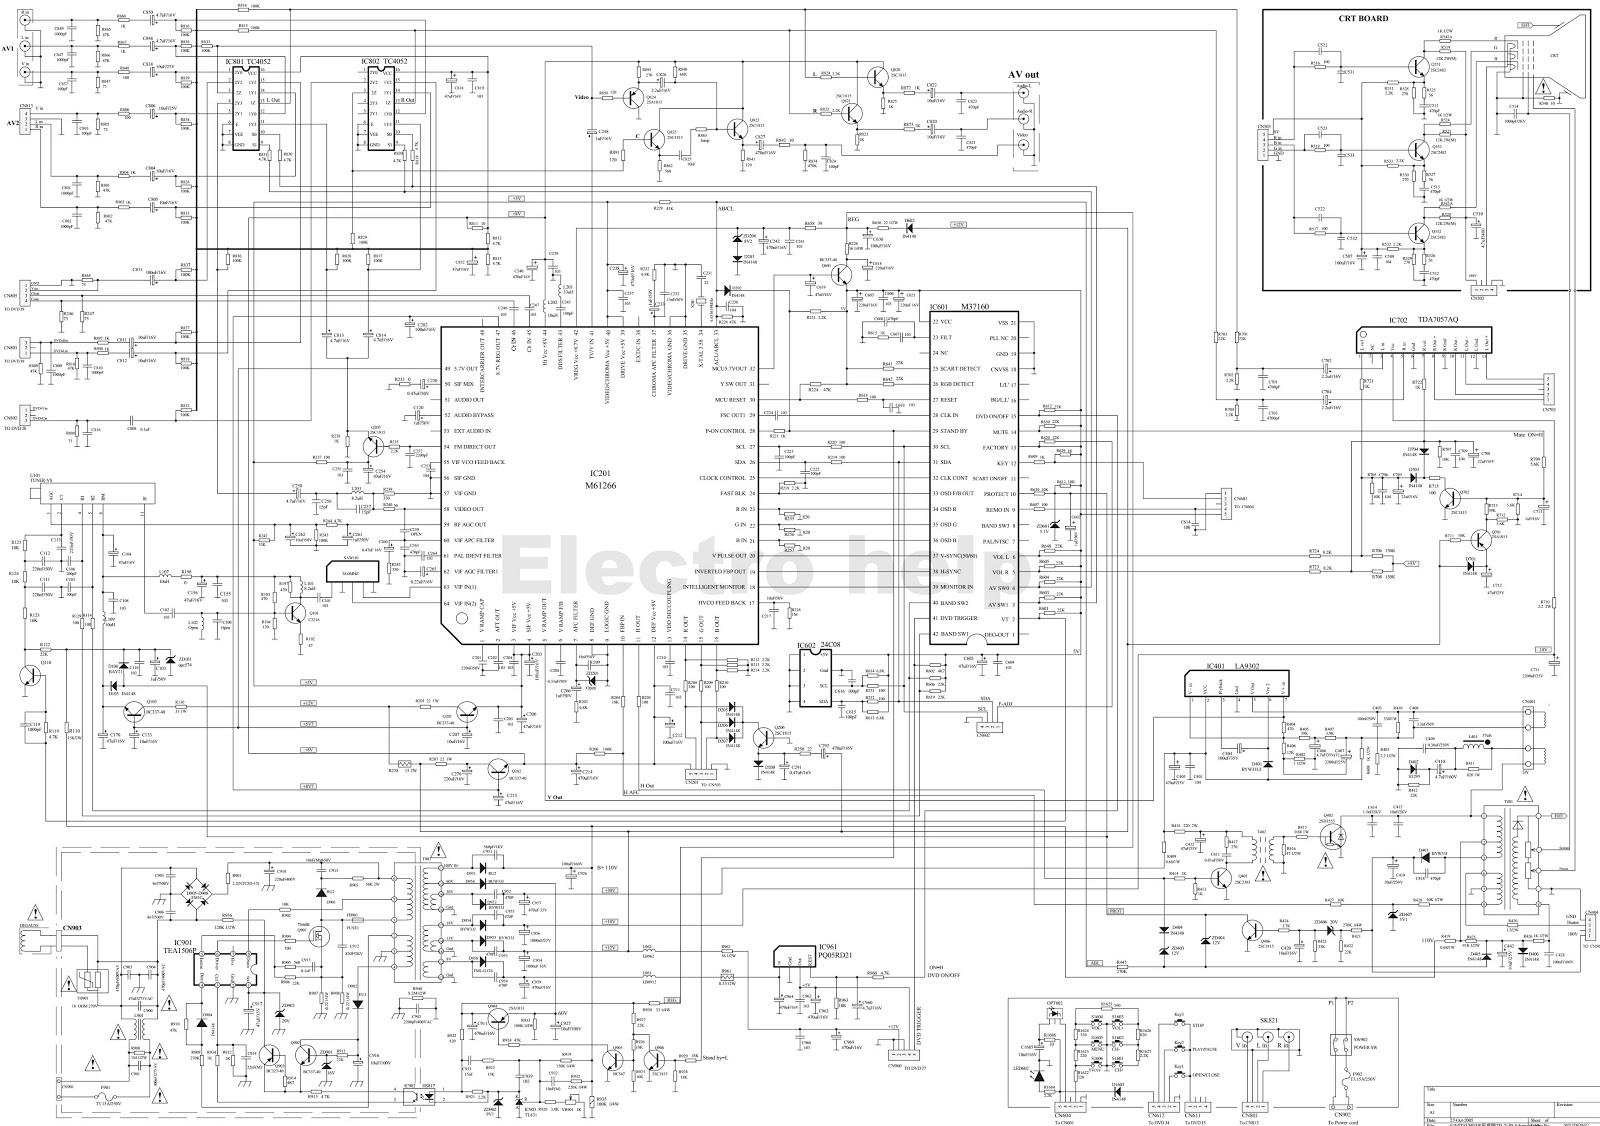 Re 40 7303 A Wiring Diagram : 27 Wiring Diagram Images